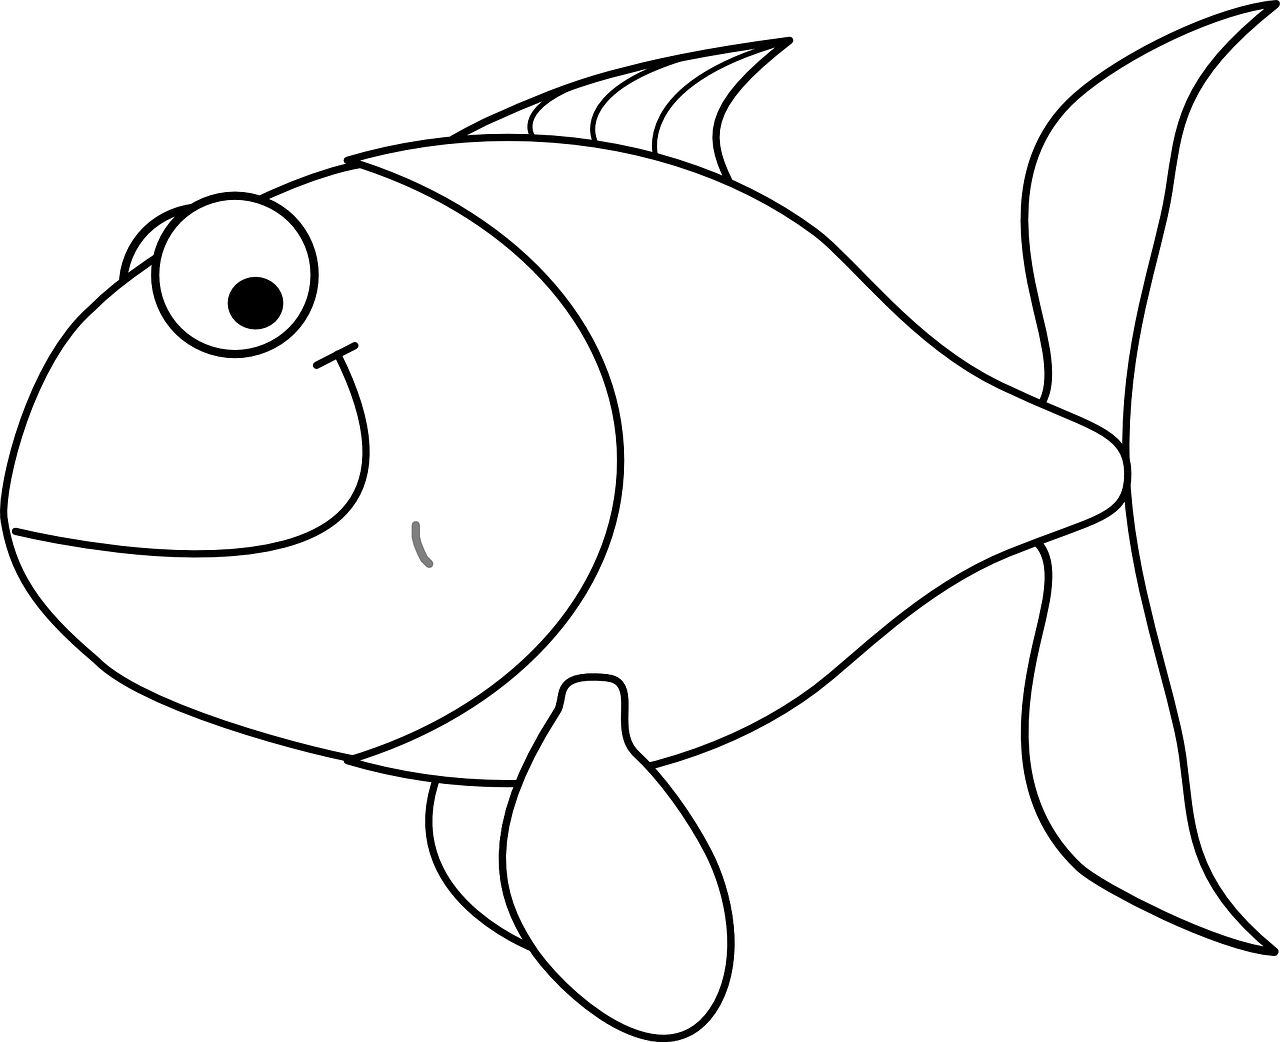 fish picture to color fish coloring pages picture fish color to